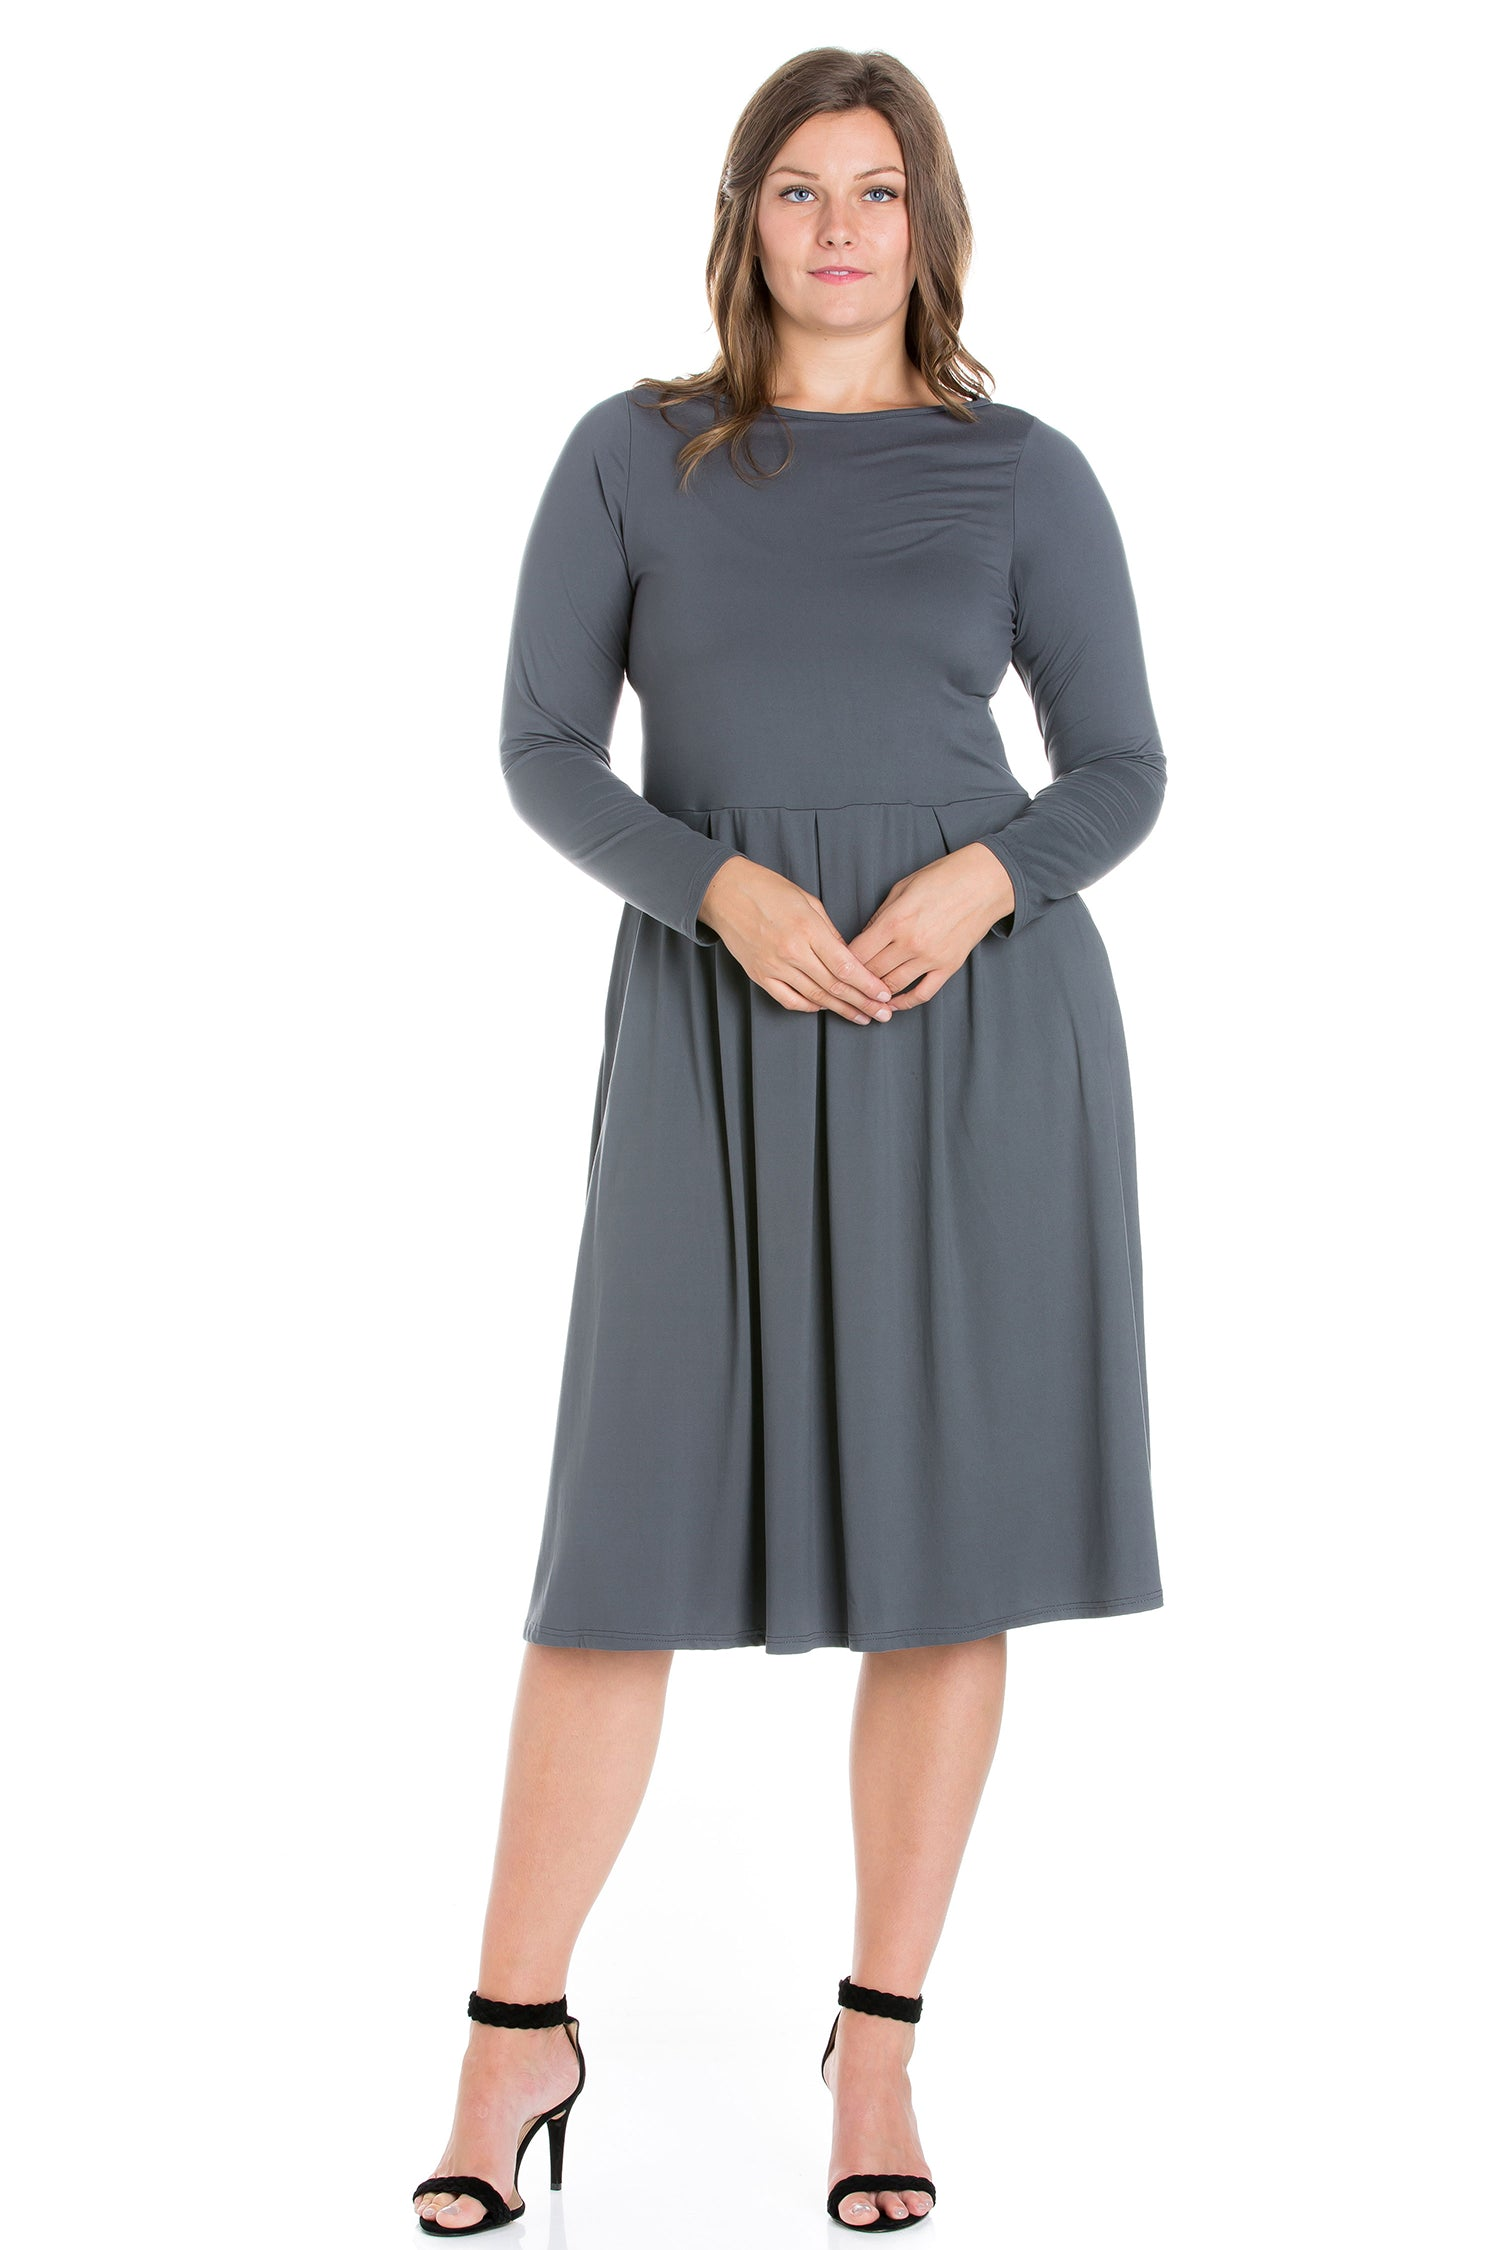 24seven Comfort Apparel Long Sleeve Fit and Flare Plus Size Midi Dress-DRESSES-24Seven Comfort Apparel-GREY-1X-24/7 Comfort Apparel